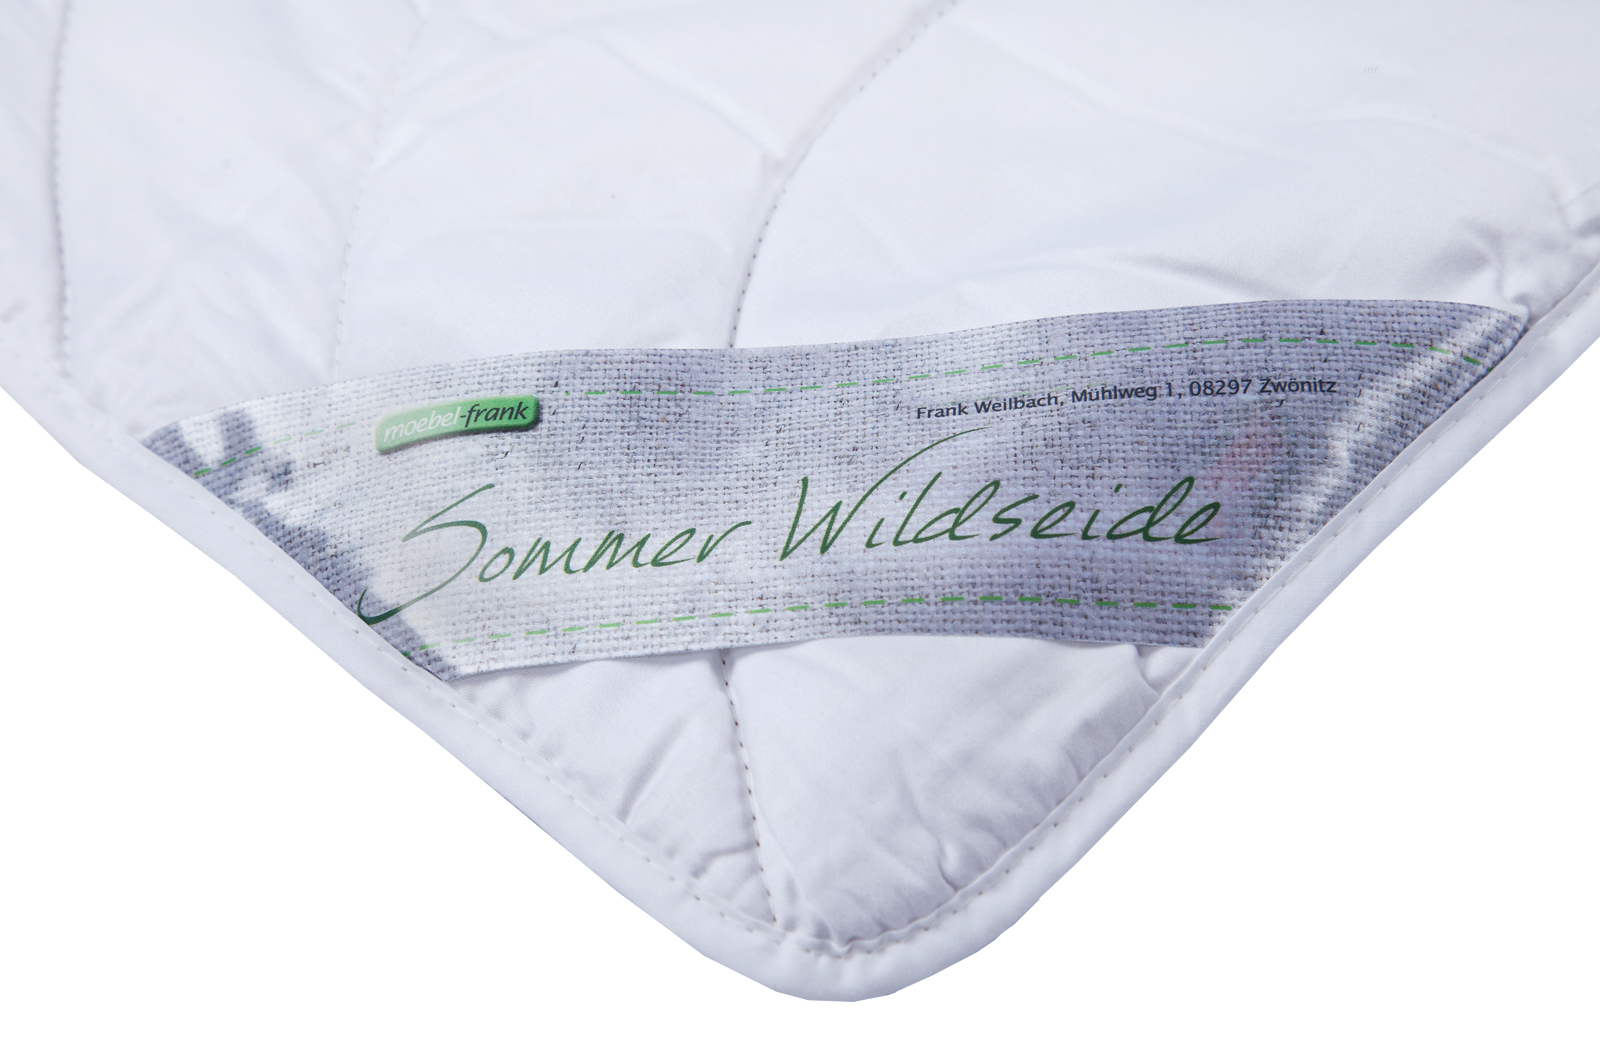 Bettdecken Sommer Winter Sommerdecke 100 Wildseide Bezug Edel Satin Baumwolle